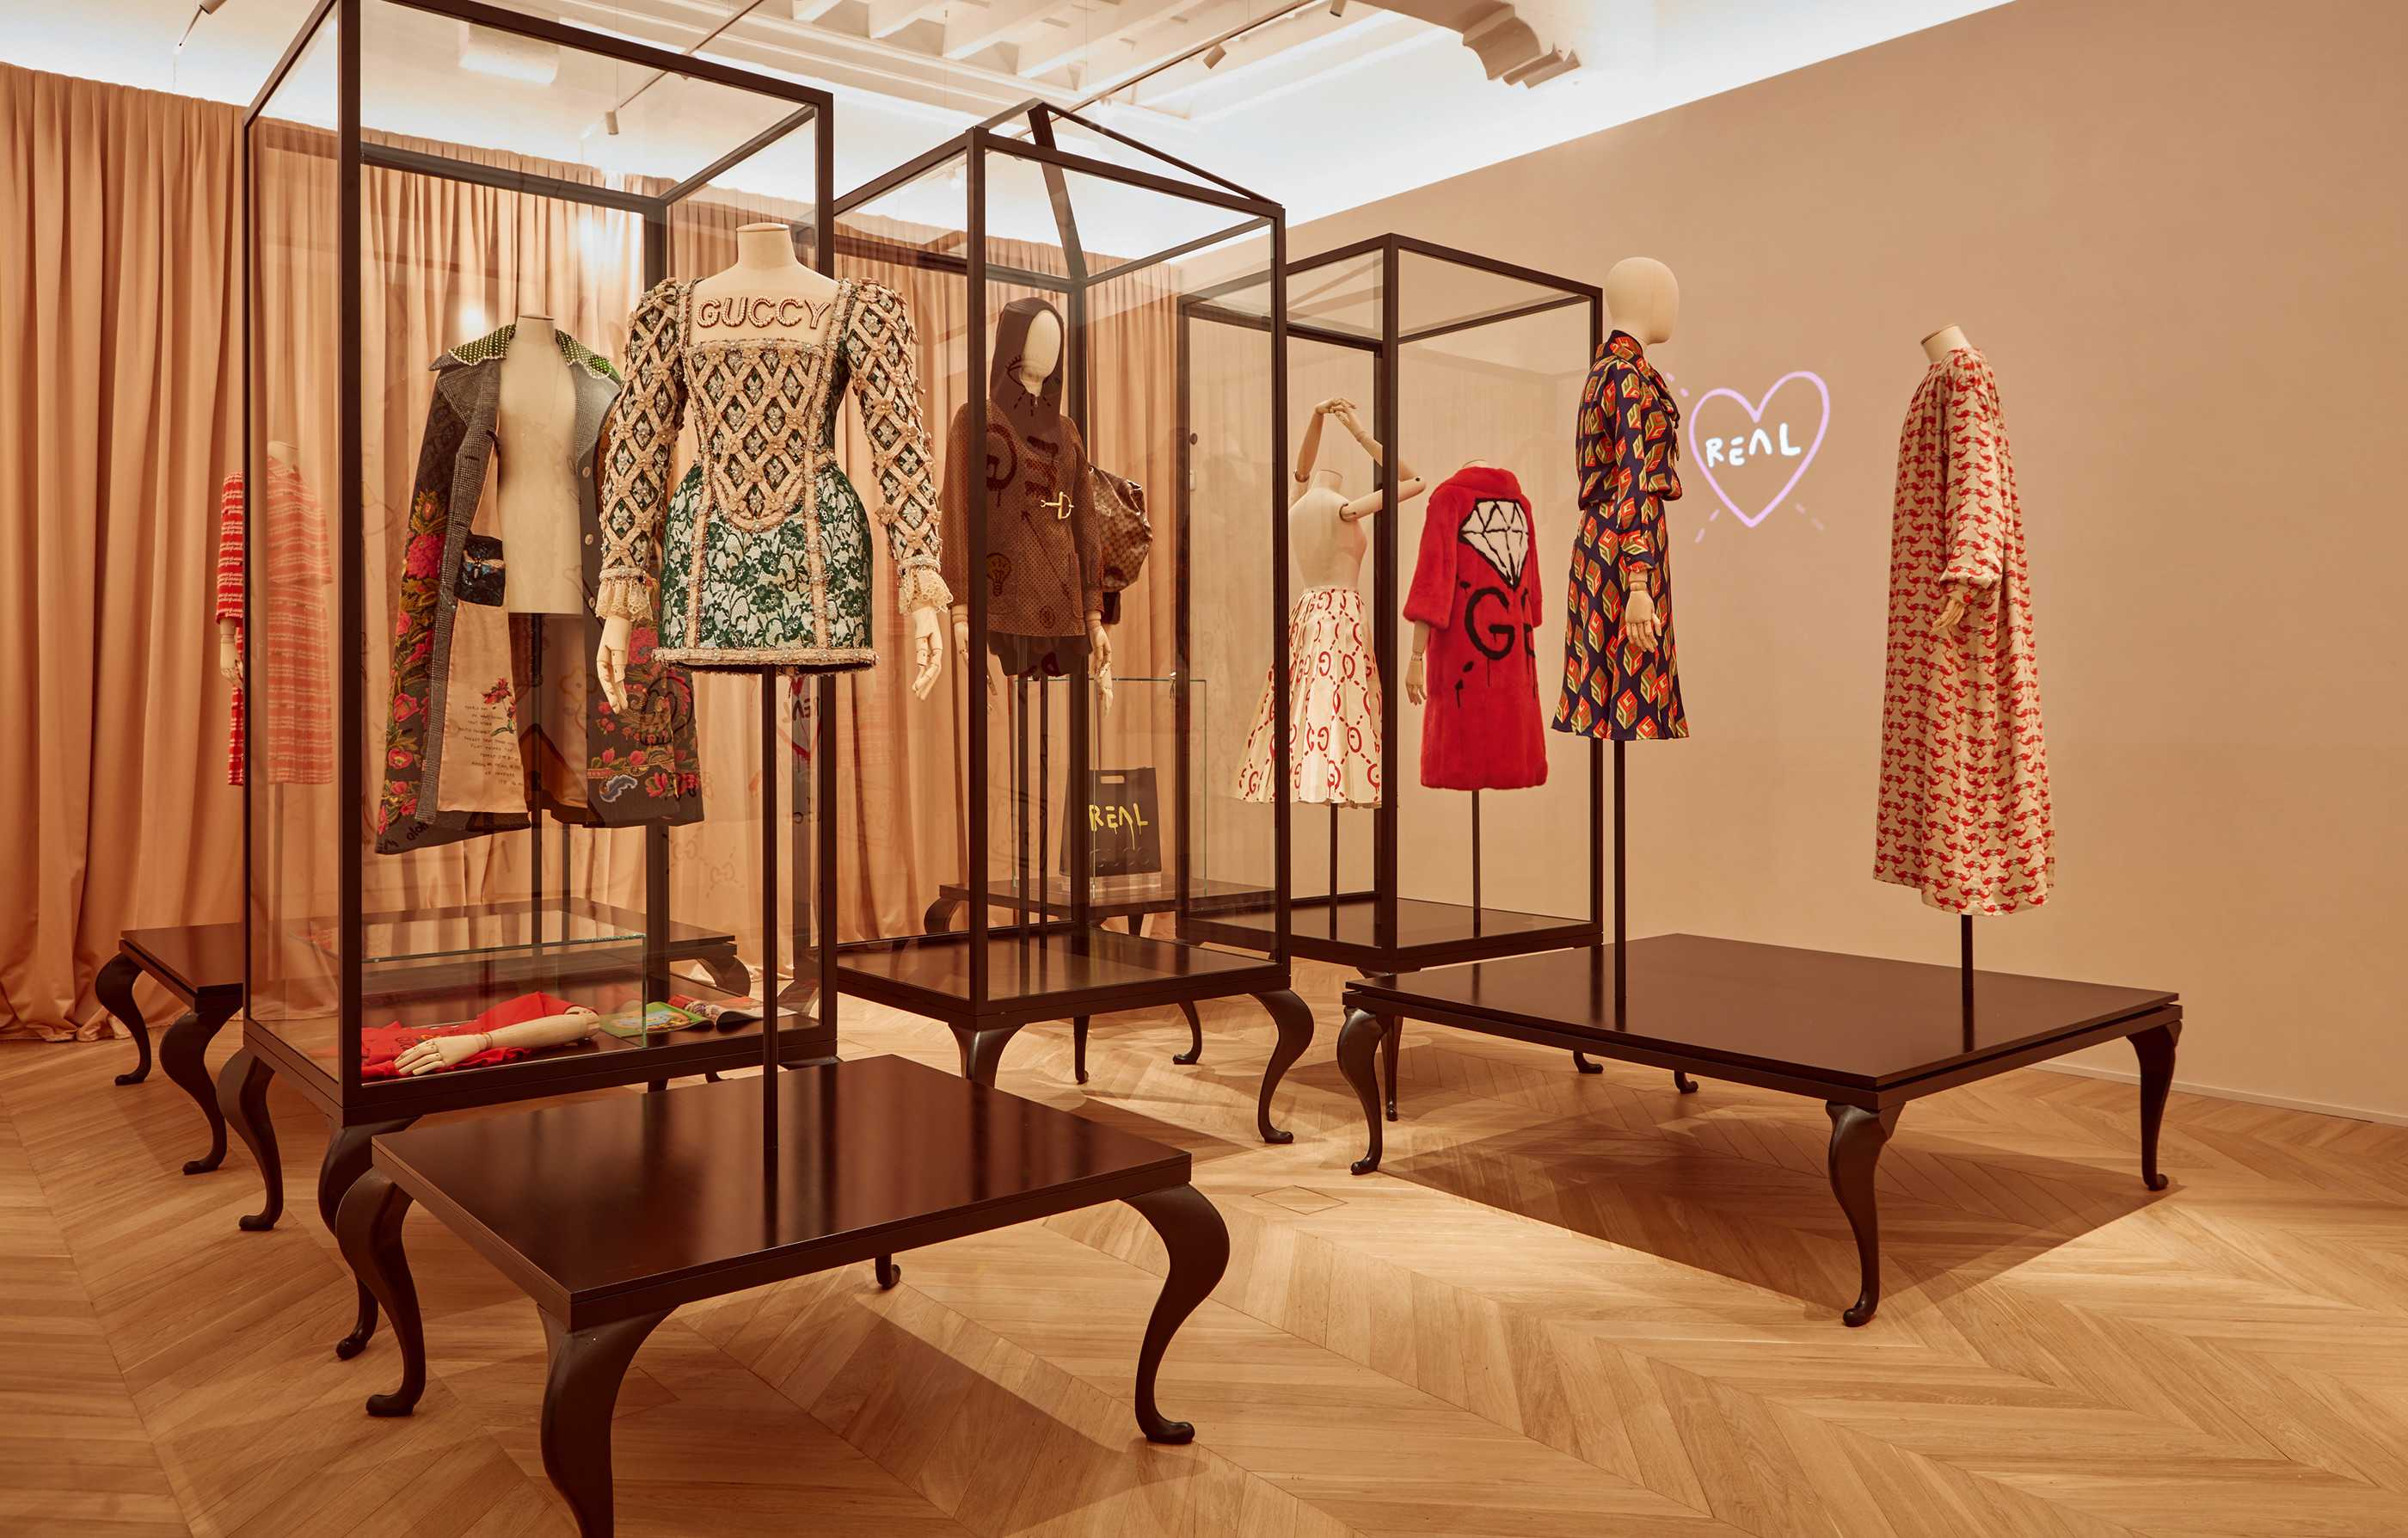 Gucci, Florence Museums, Gucci Museum, Gucci Museo, Top fashion museums